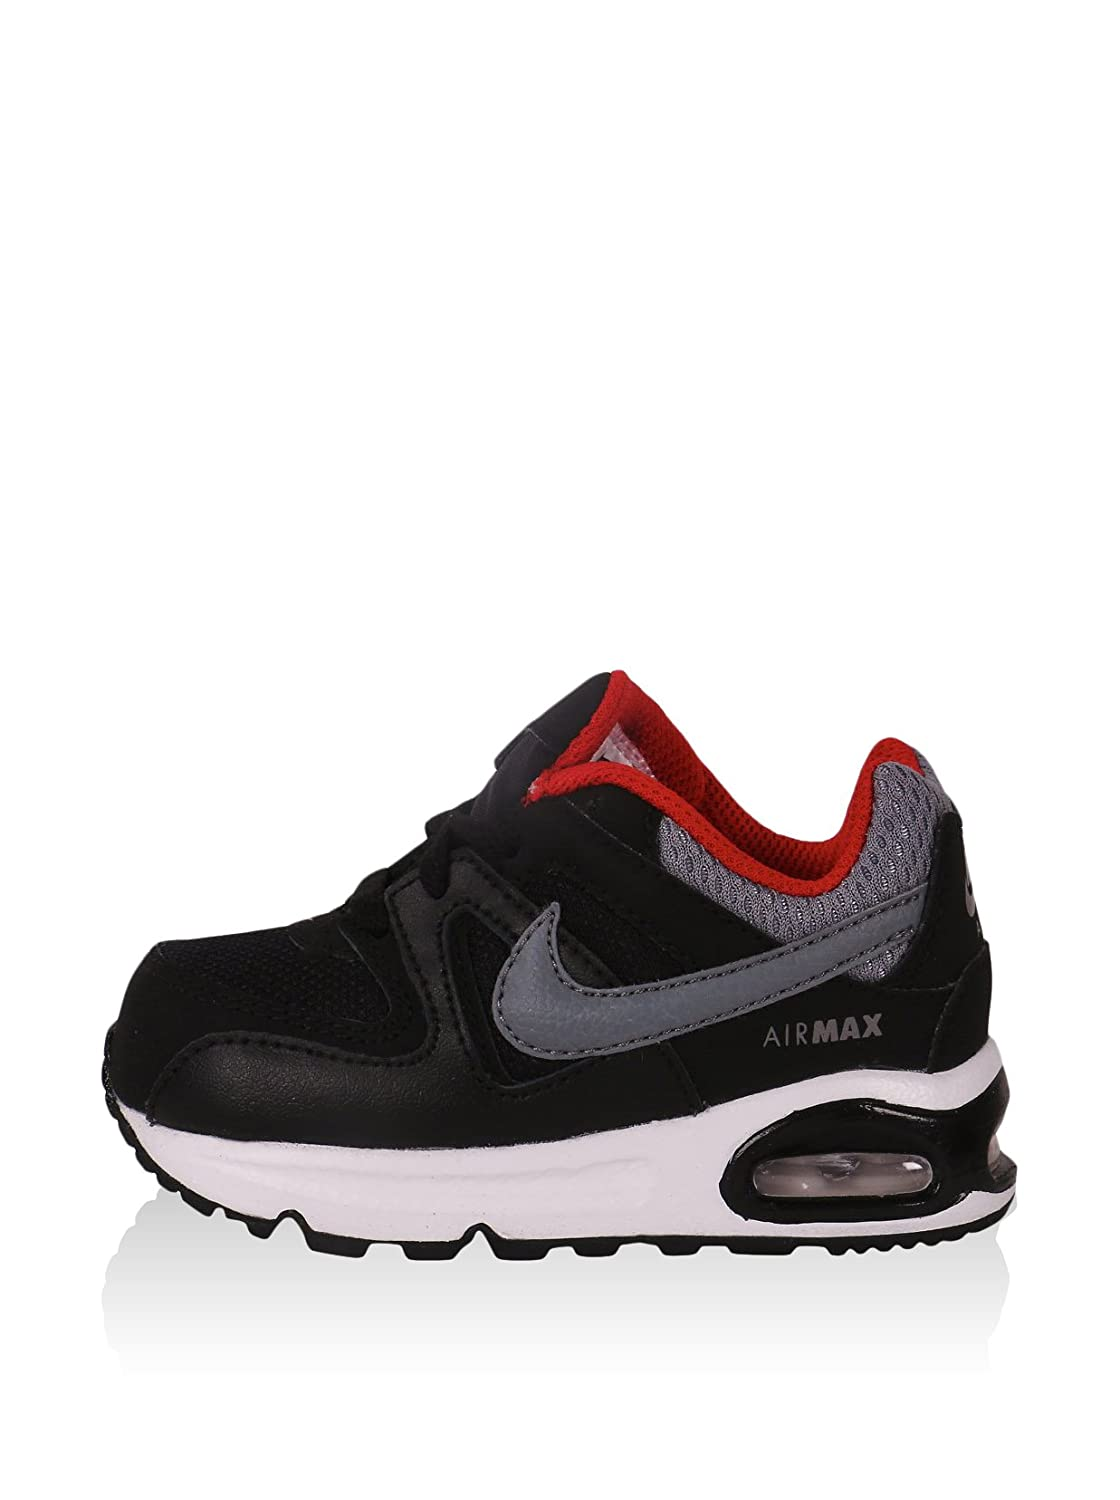 Nike Zapatillas Air Max Command TD Negro/Gris/Rojo EU 21 US 5C